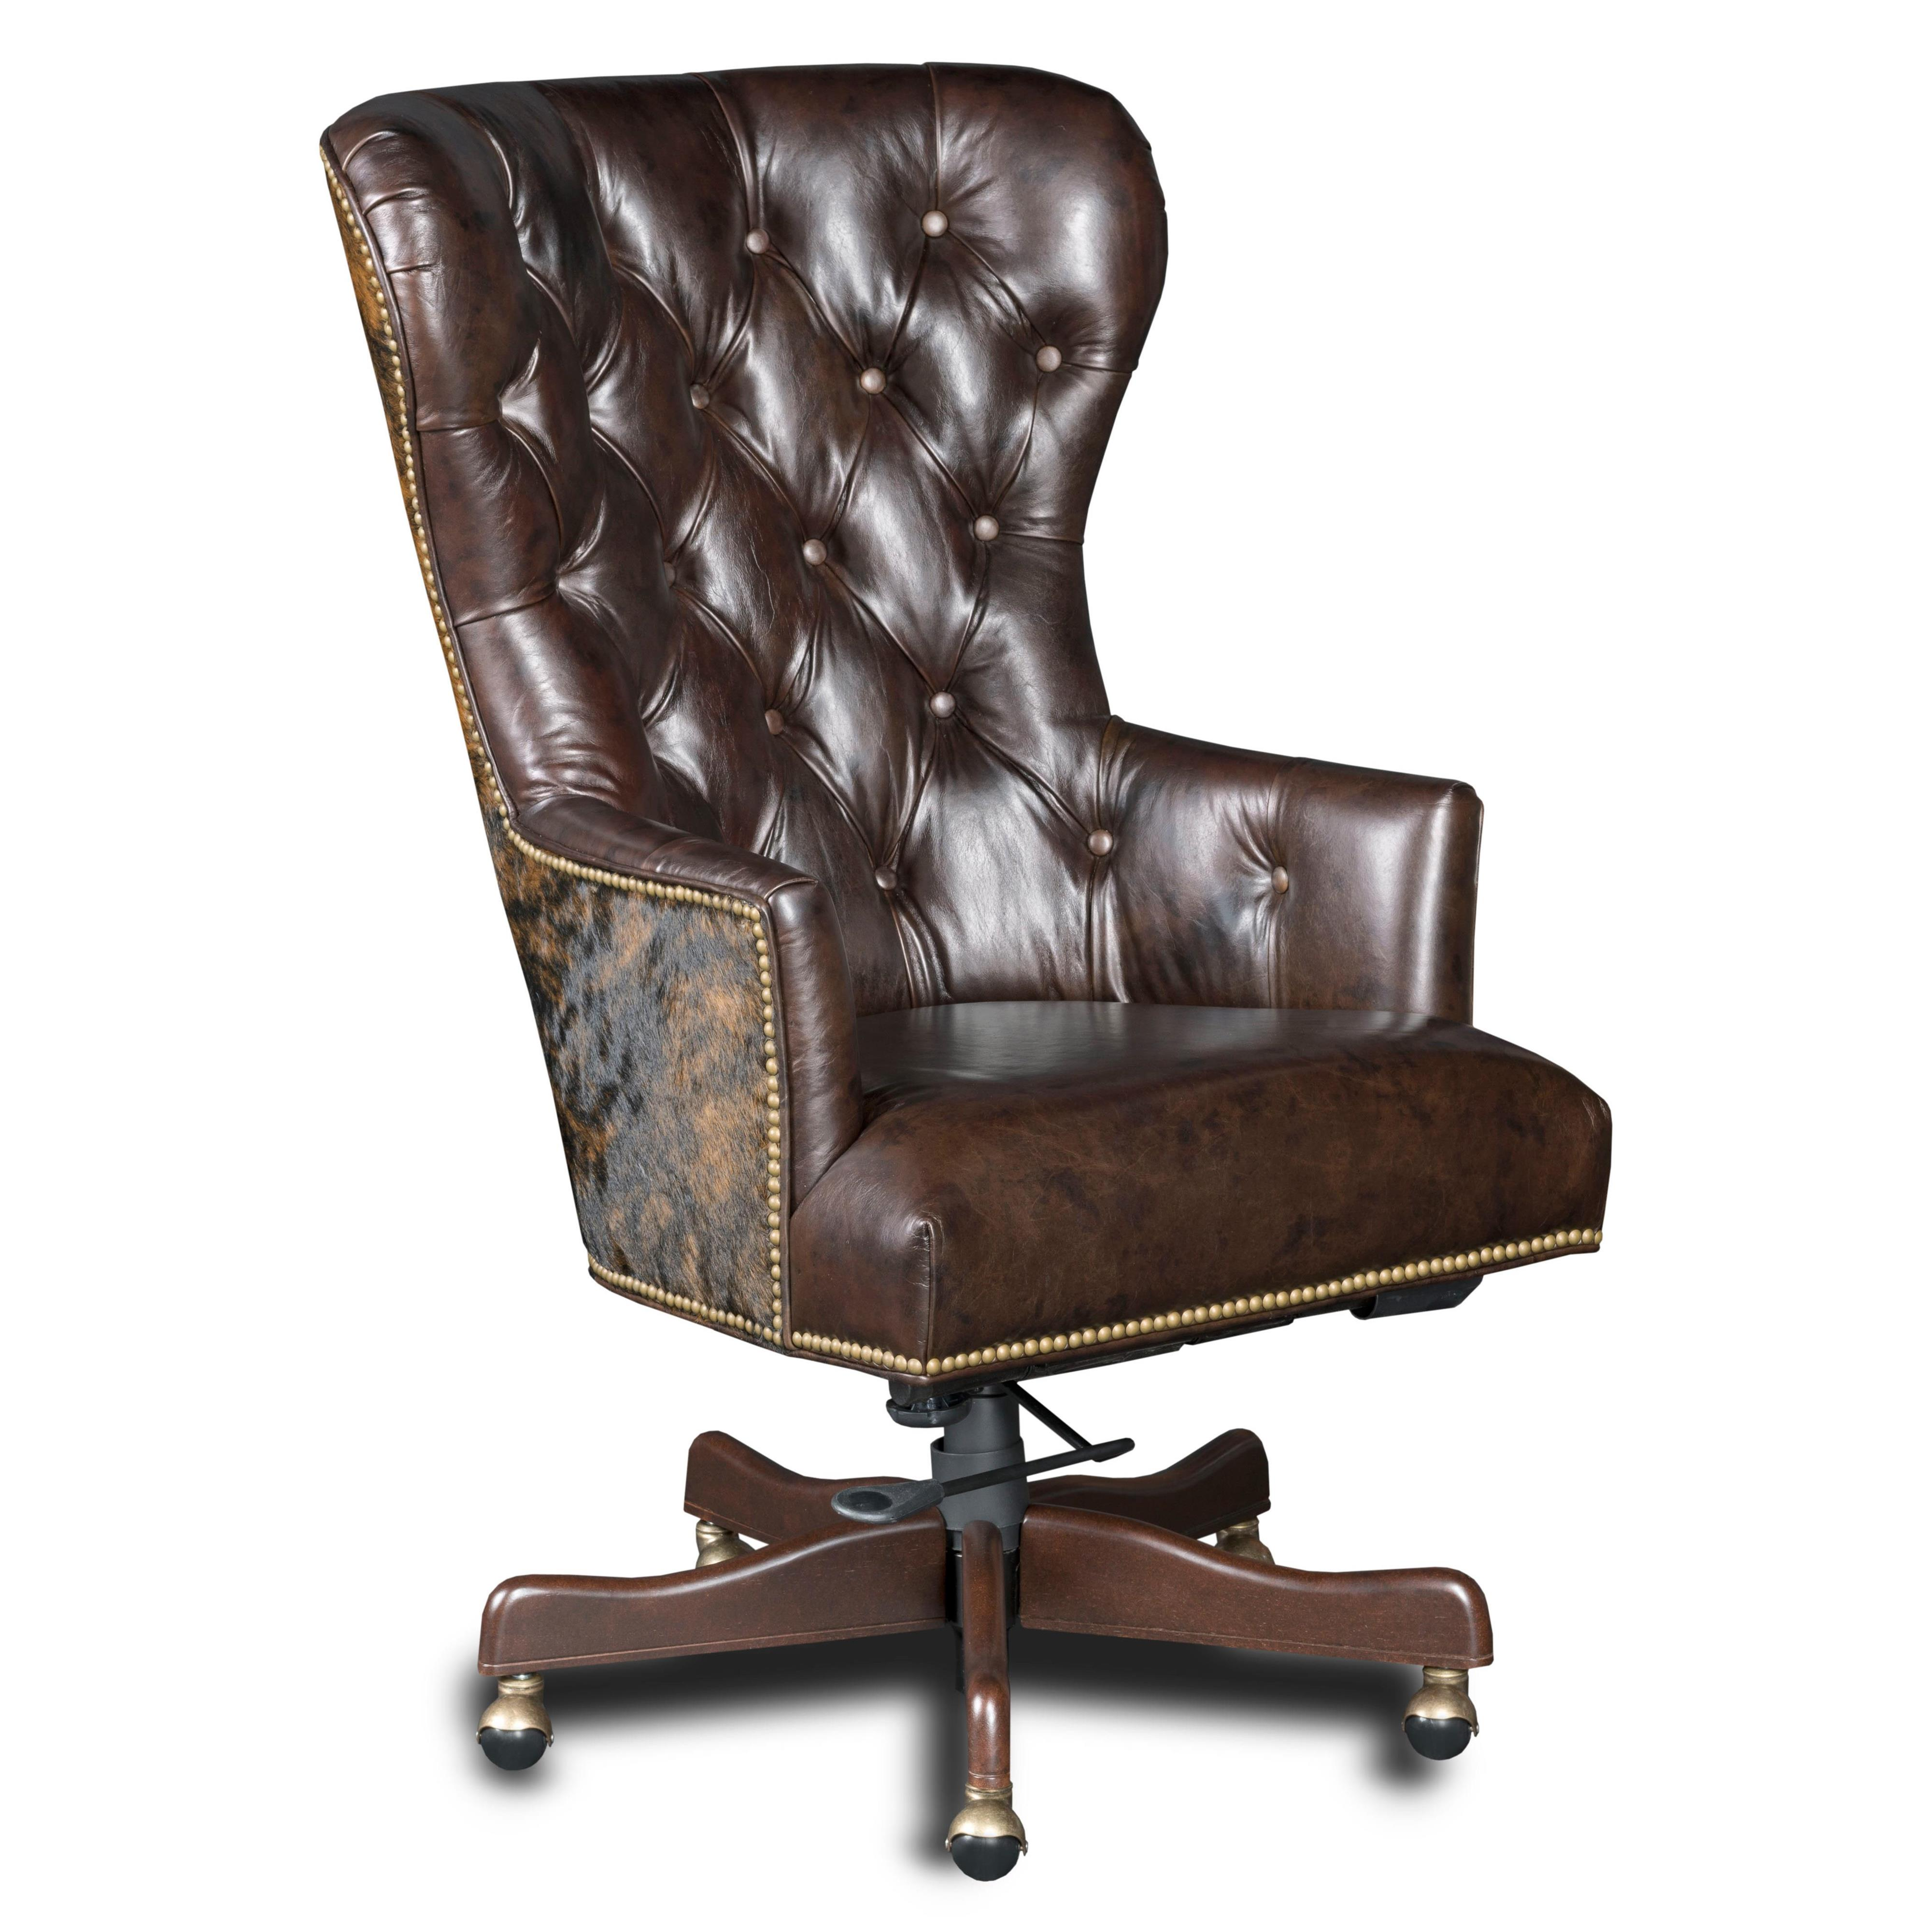 Executive Seating Home Office Chair by Hooker Furniture at Baer's Furniture